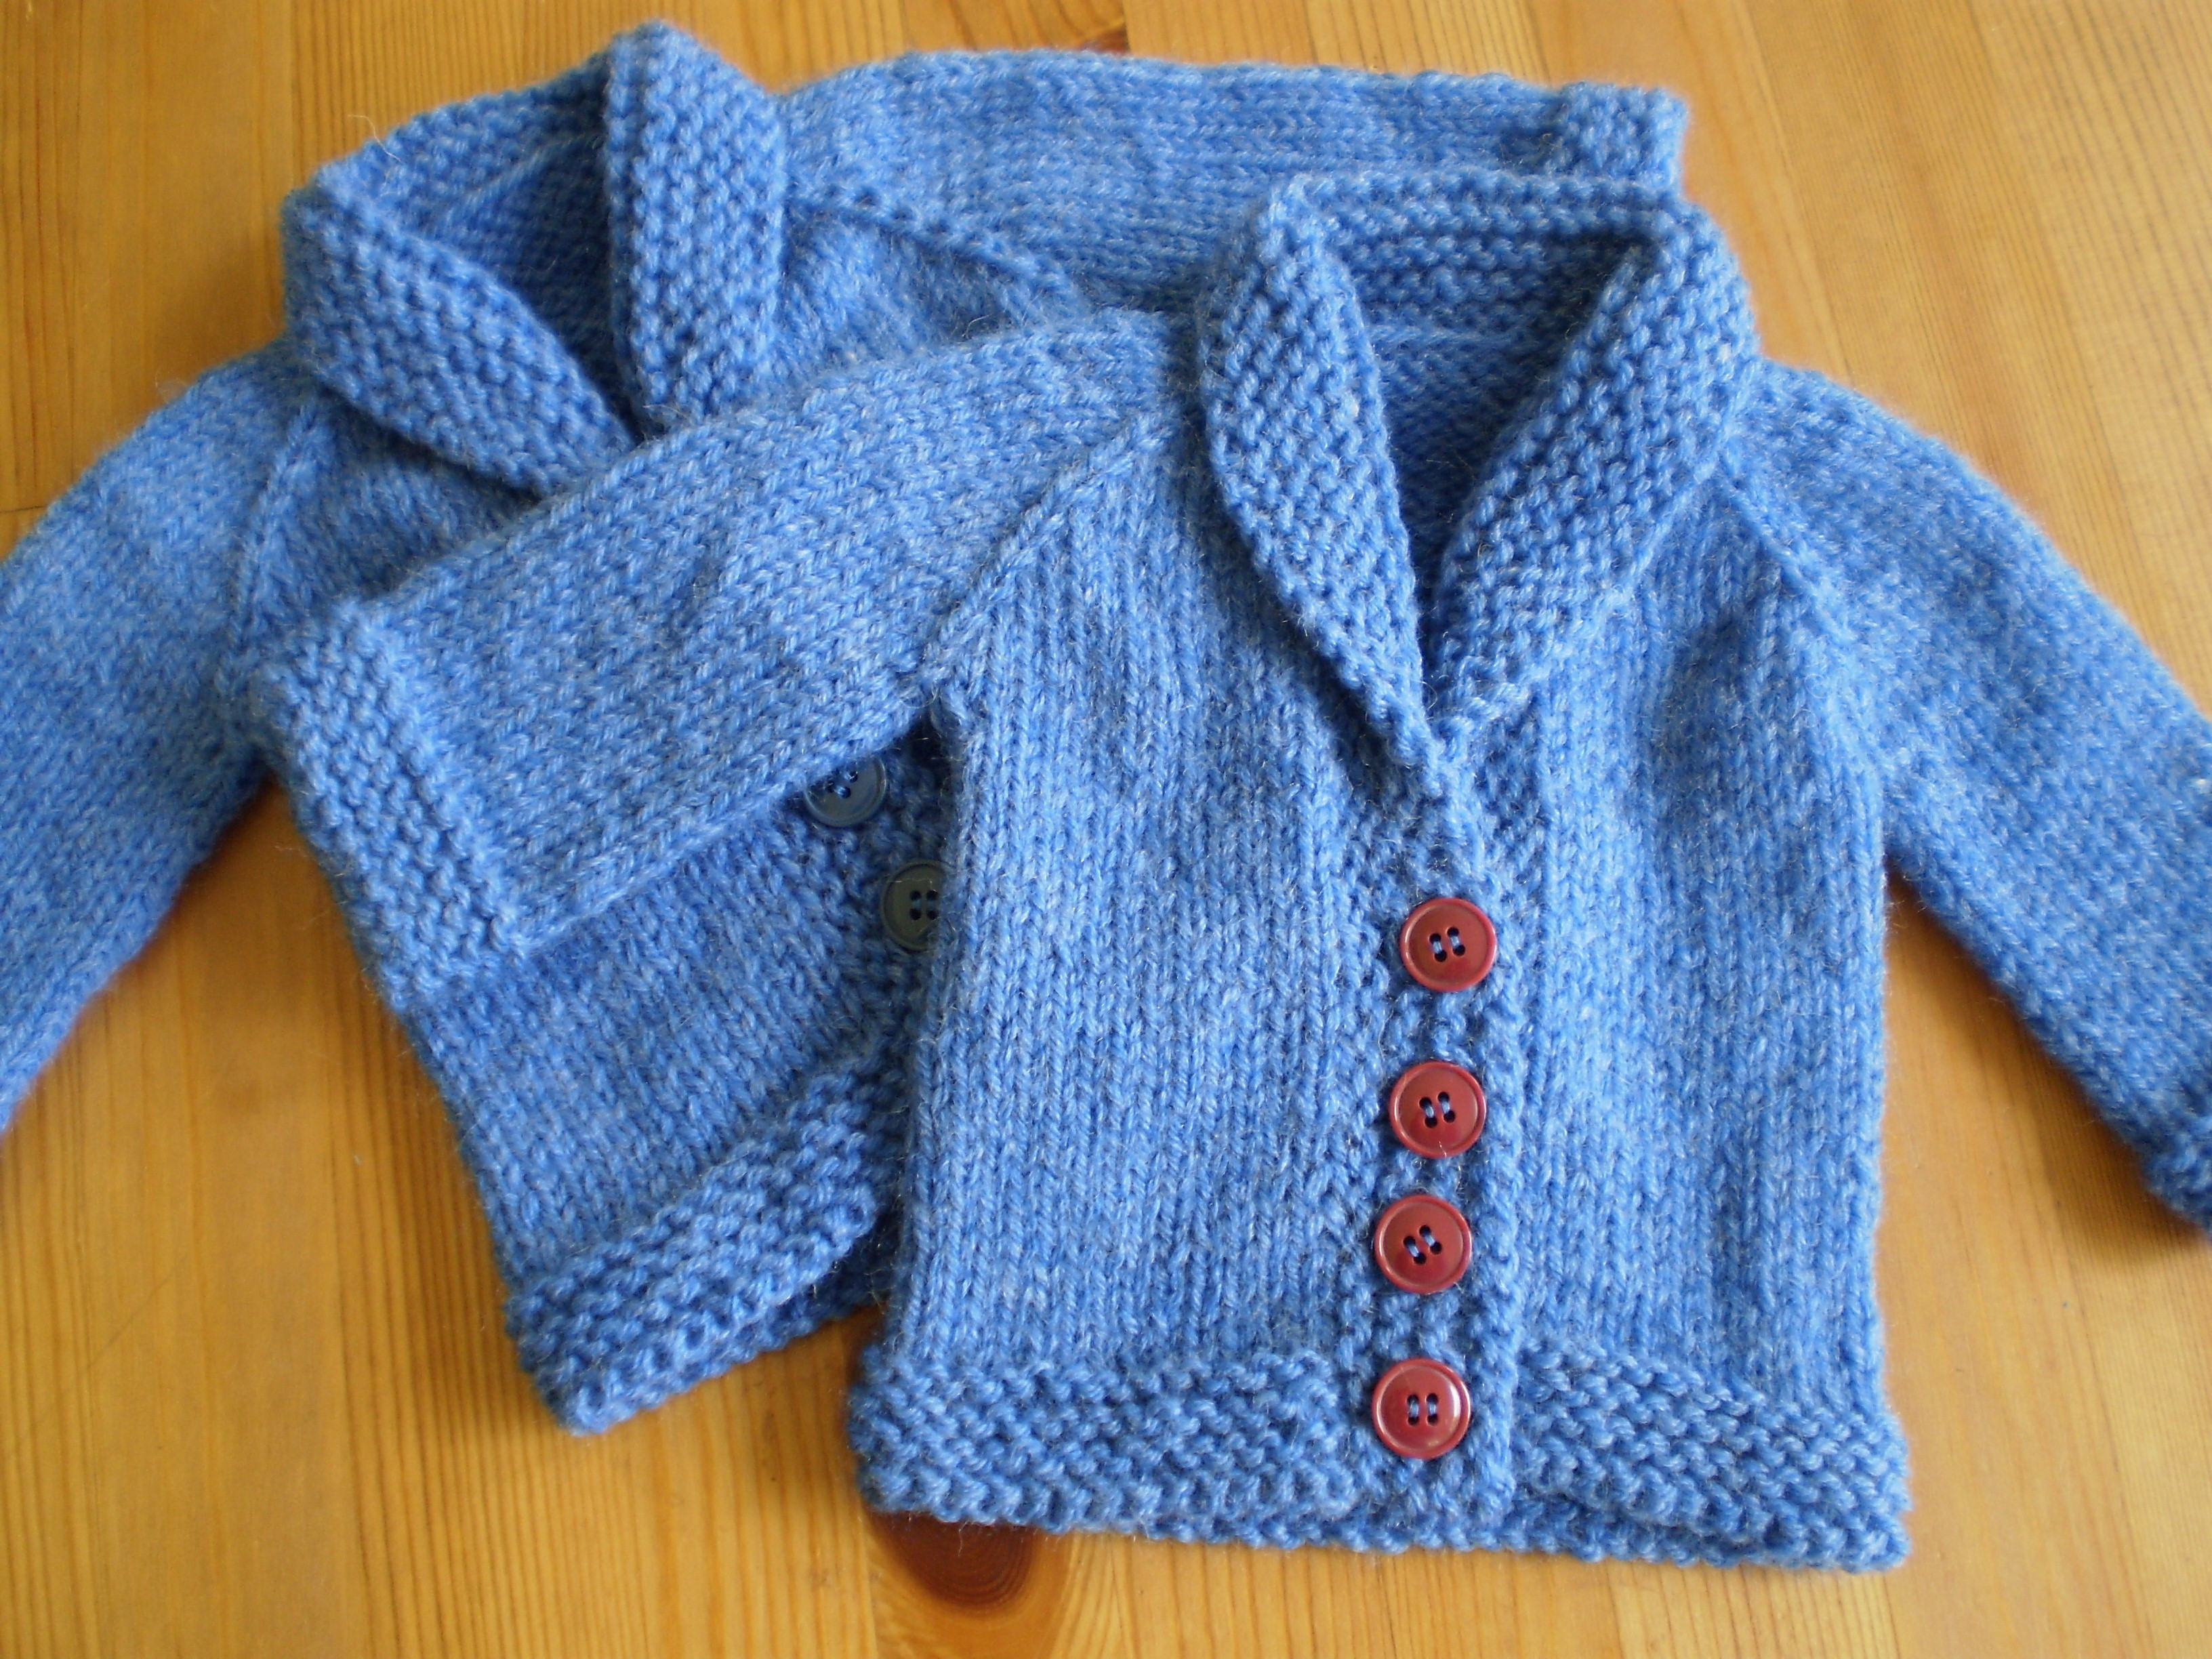 Easy Baby Knitting Patterns Inspirational Easy Baby Knitting Patterns Free Of Innovative 50 Photos Easy Baby Knitting Patterns